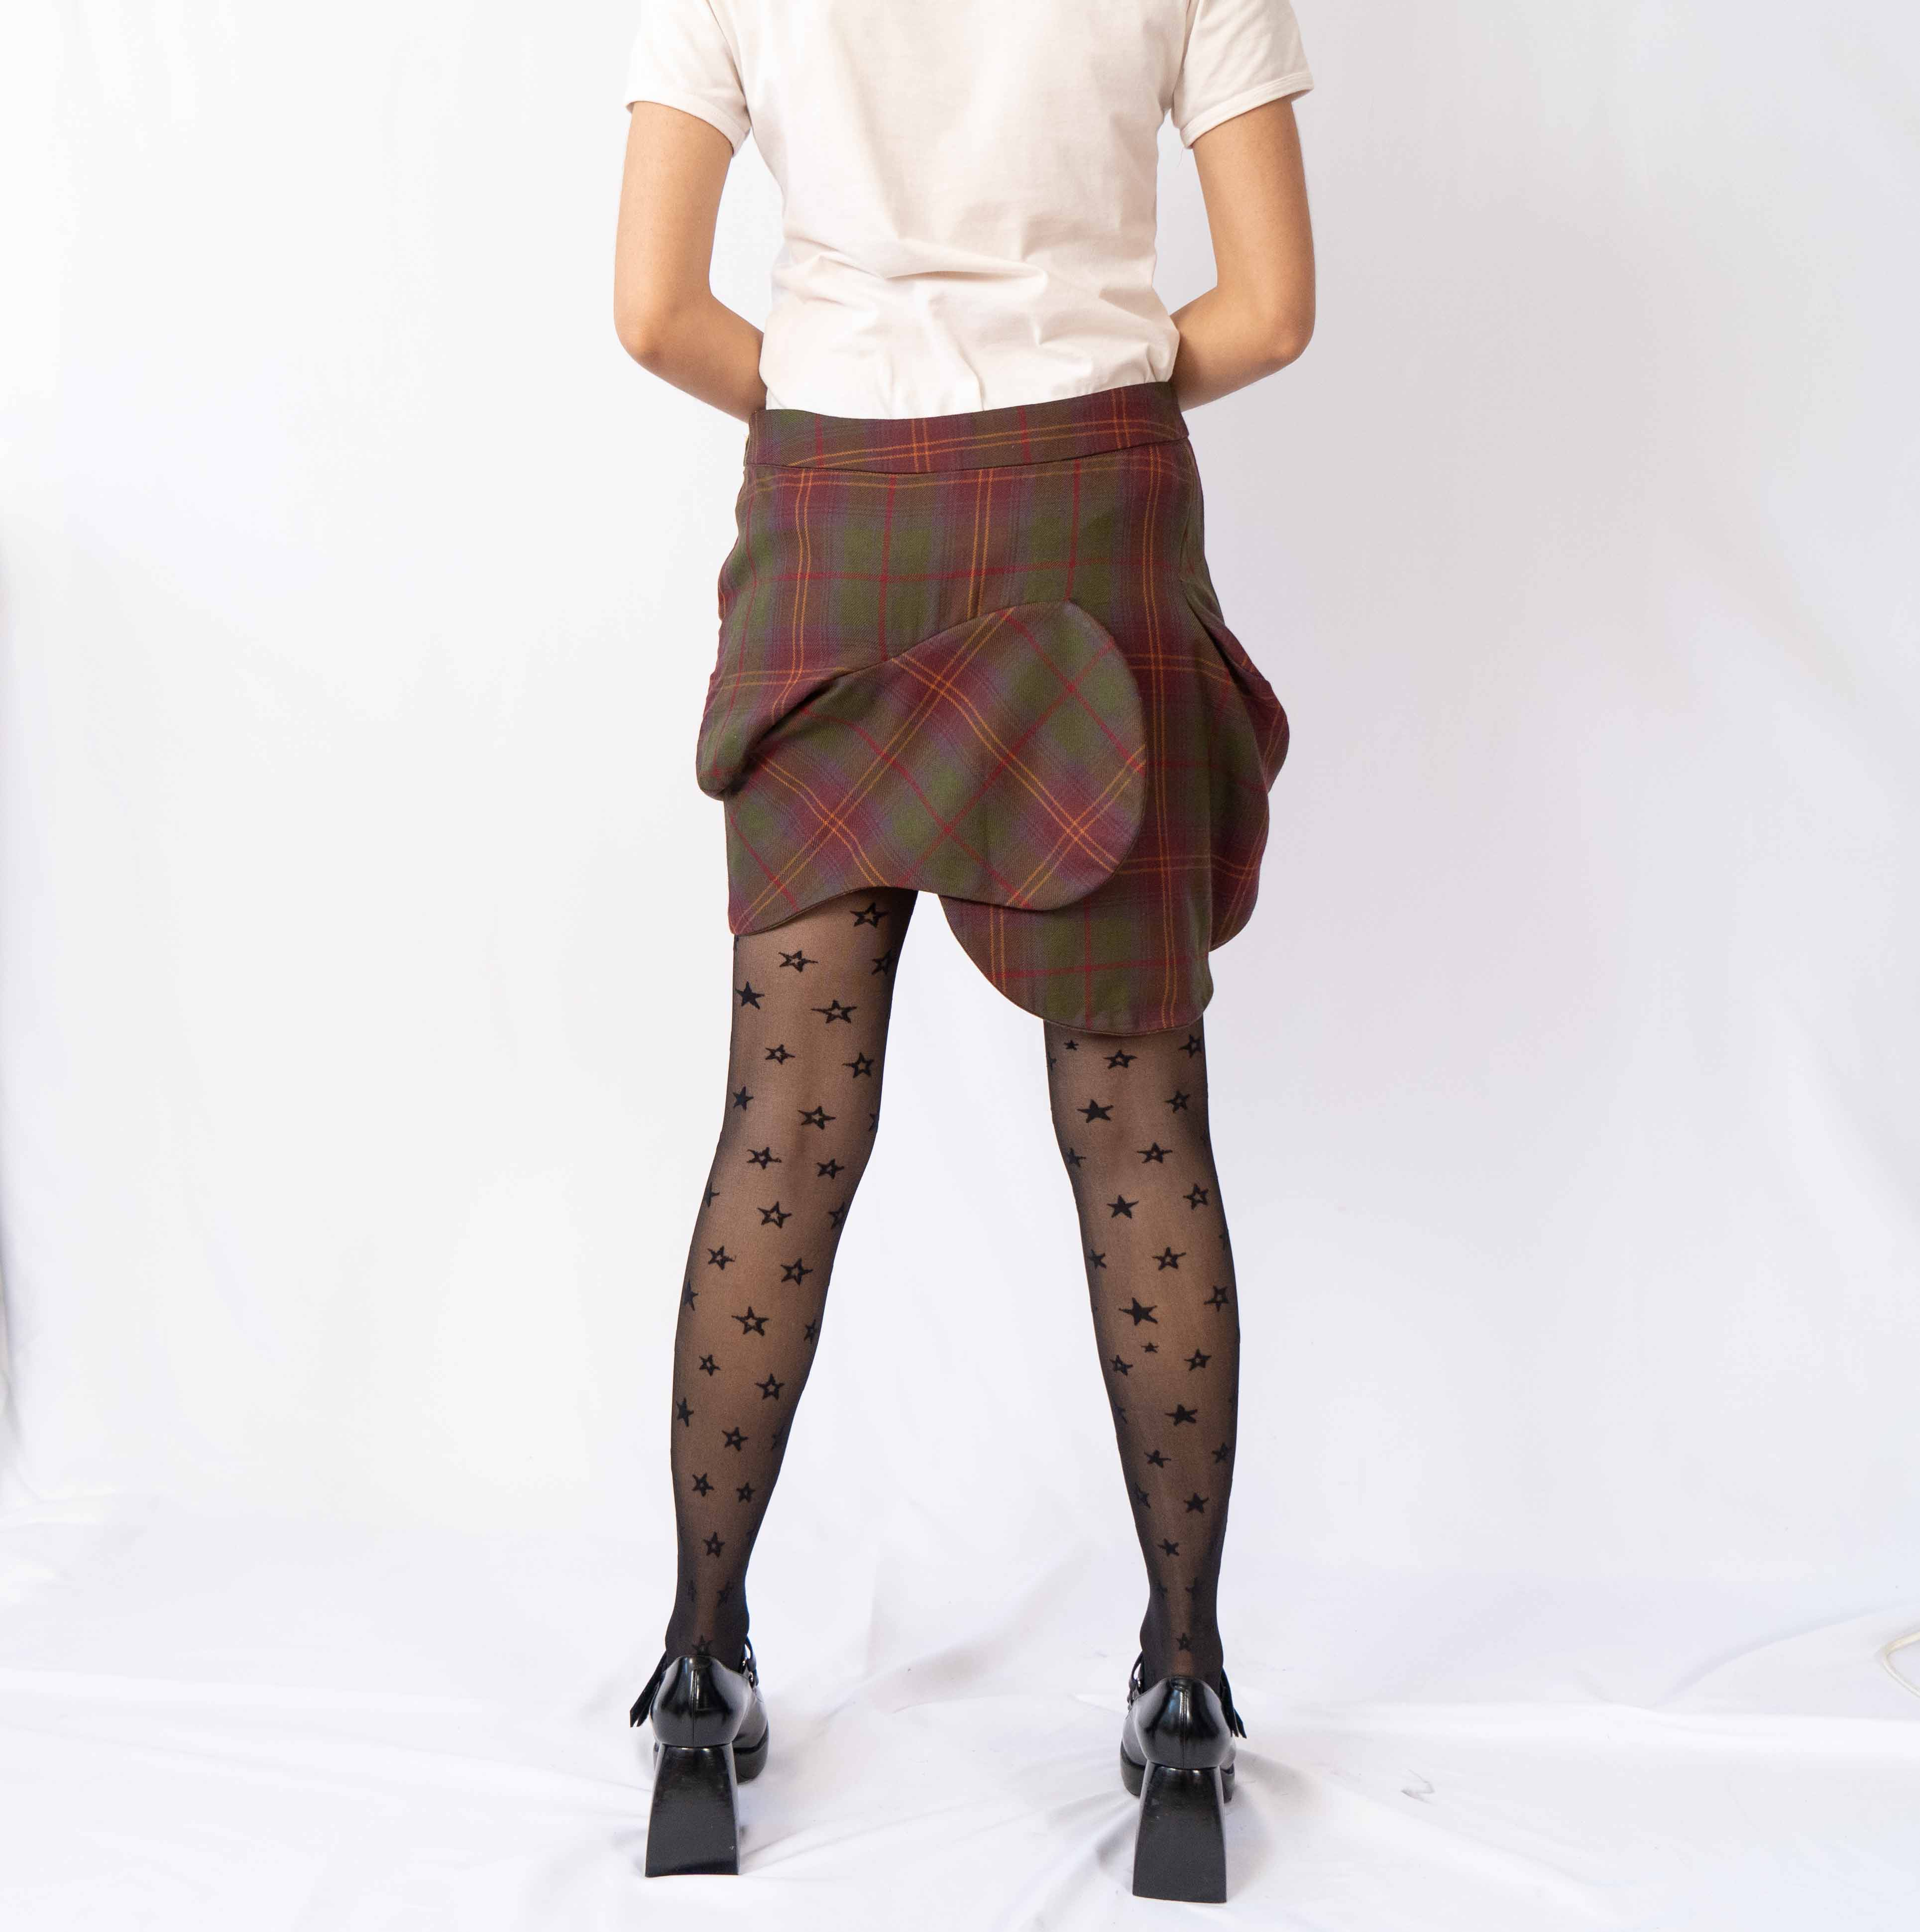 Your favorite plaid skirt just got a major upgrade. This beautiful can't get more existing.